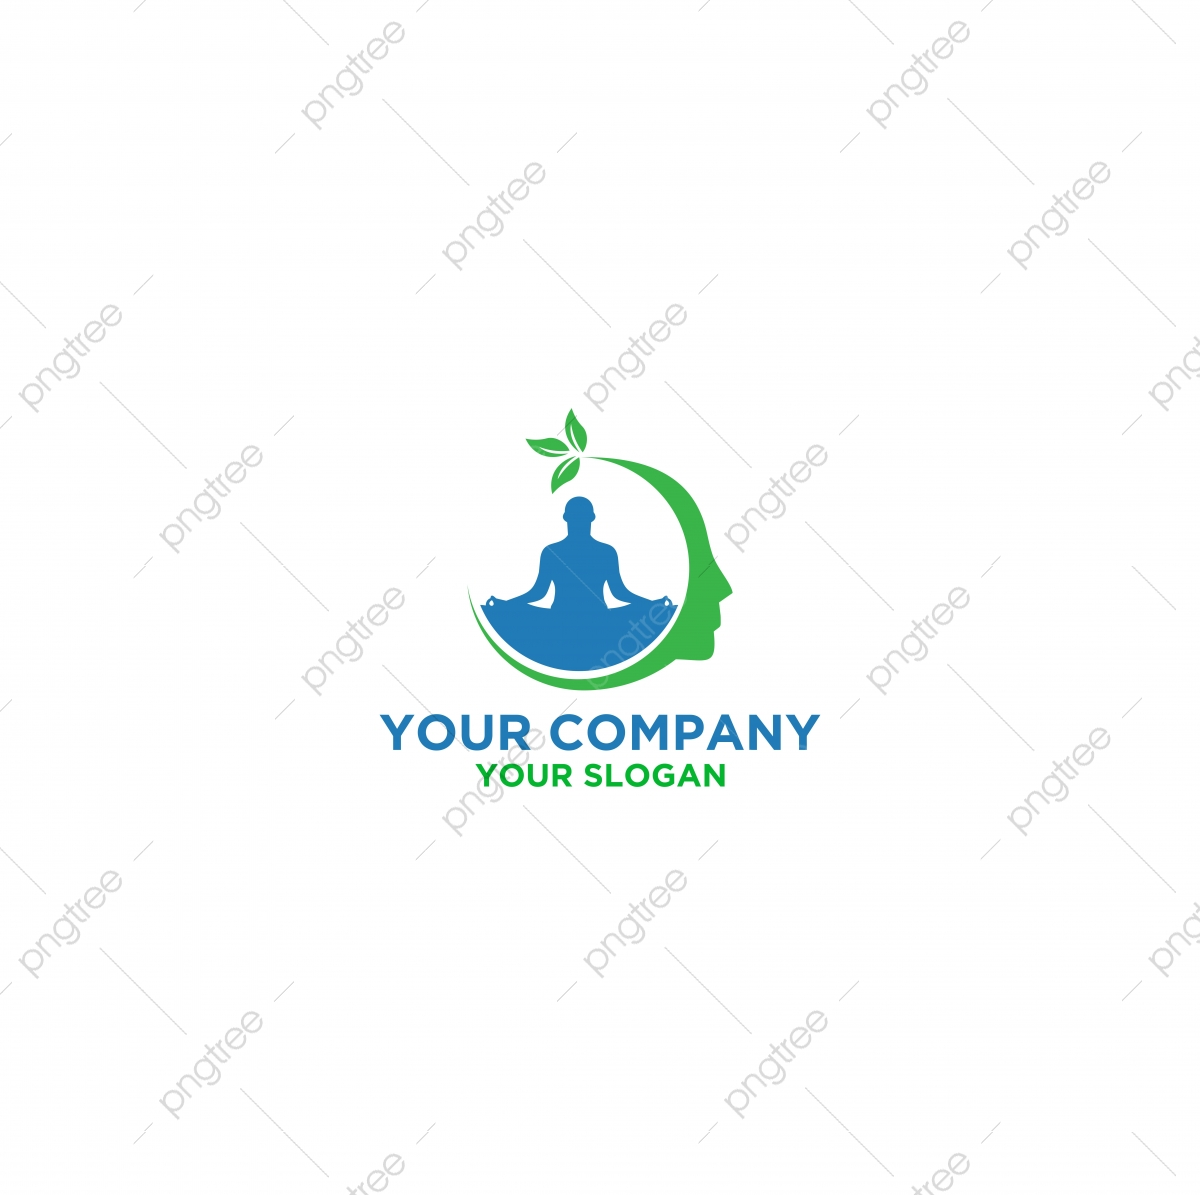 yoga logo png images vector and psd files free download on pngtree https pngtree com freepng think yoga logo design vector 5098337 html